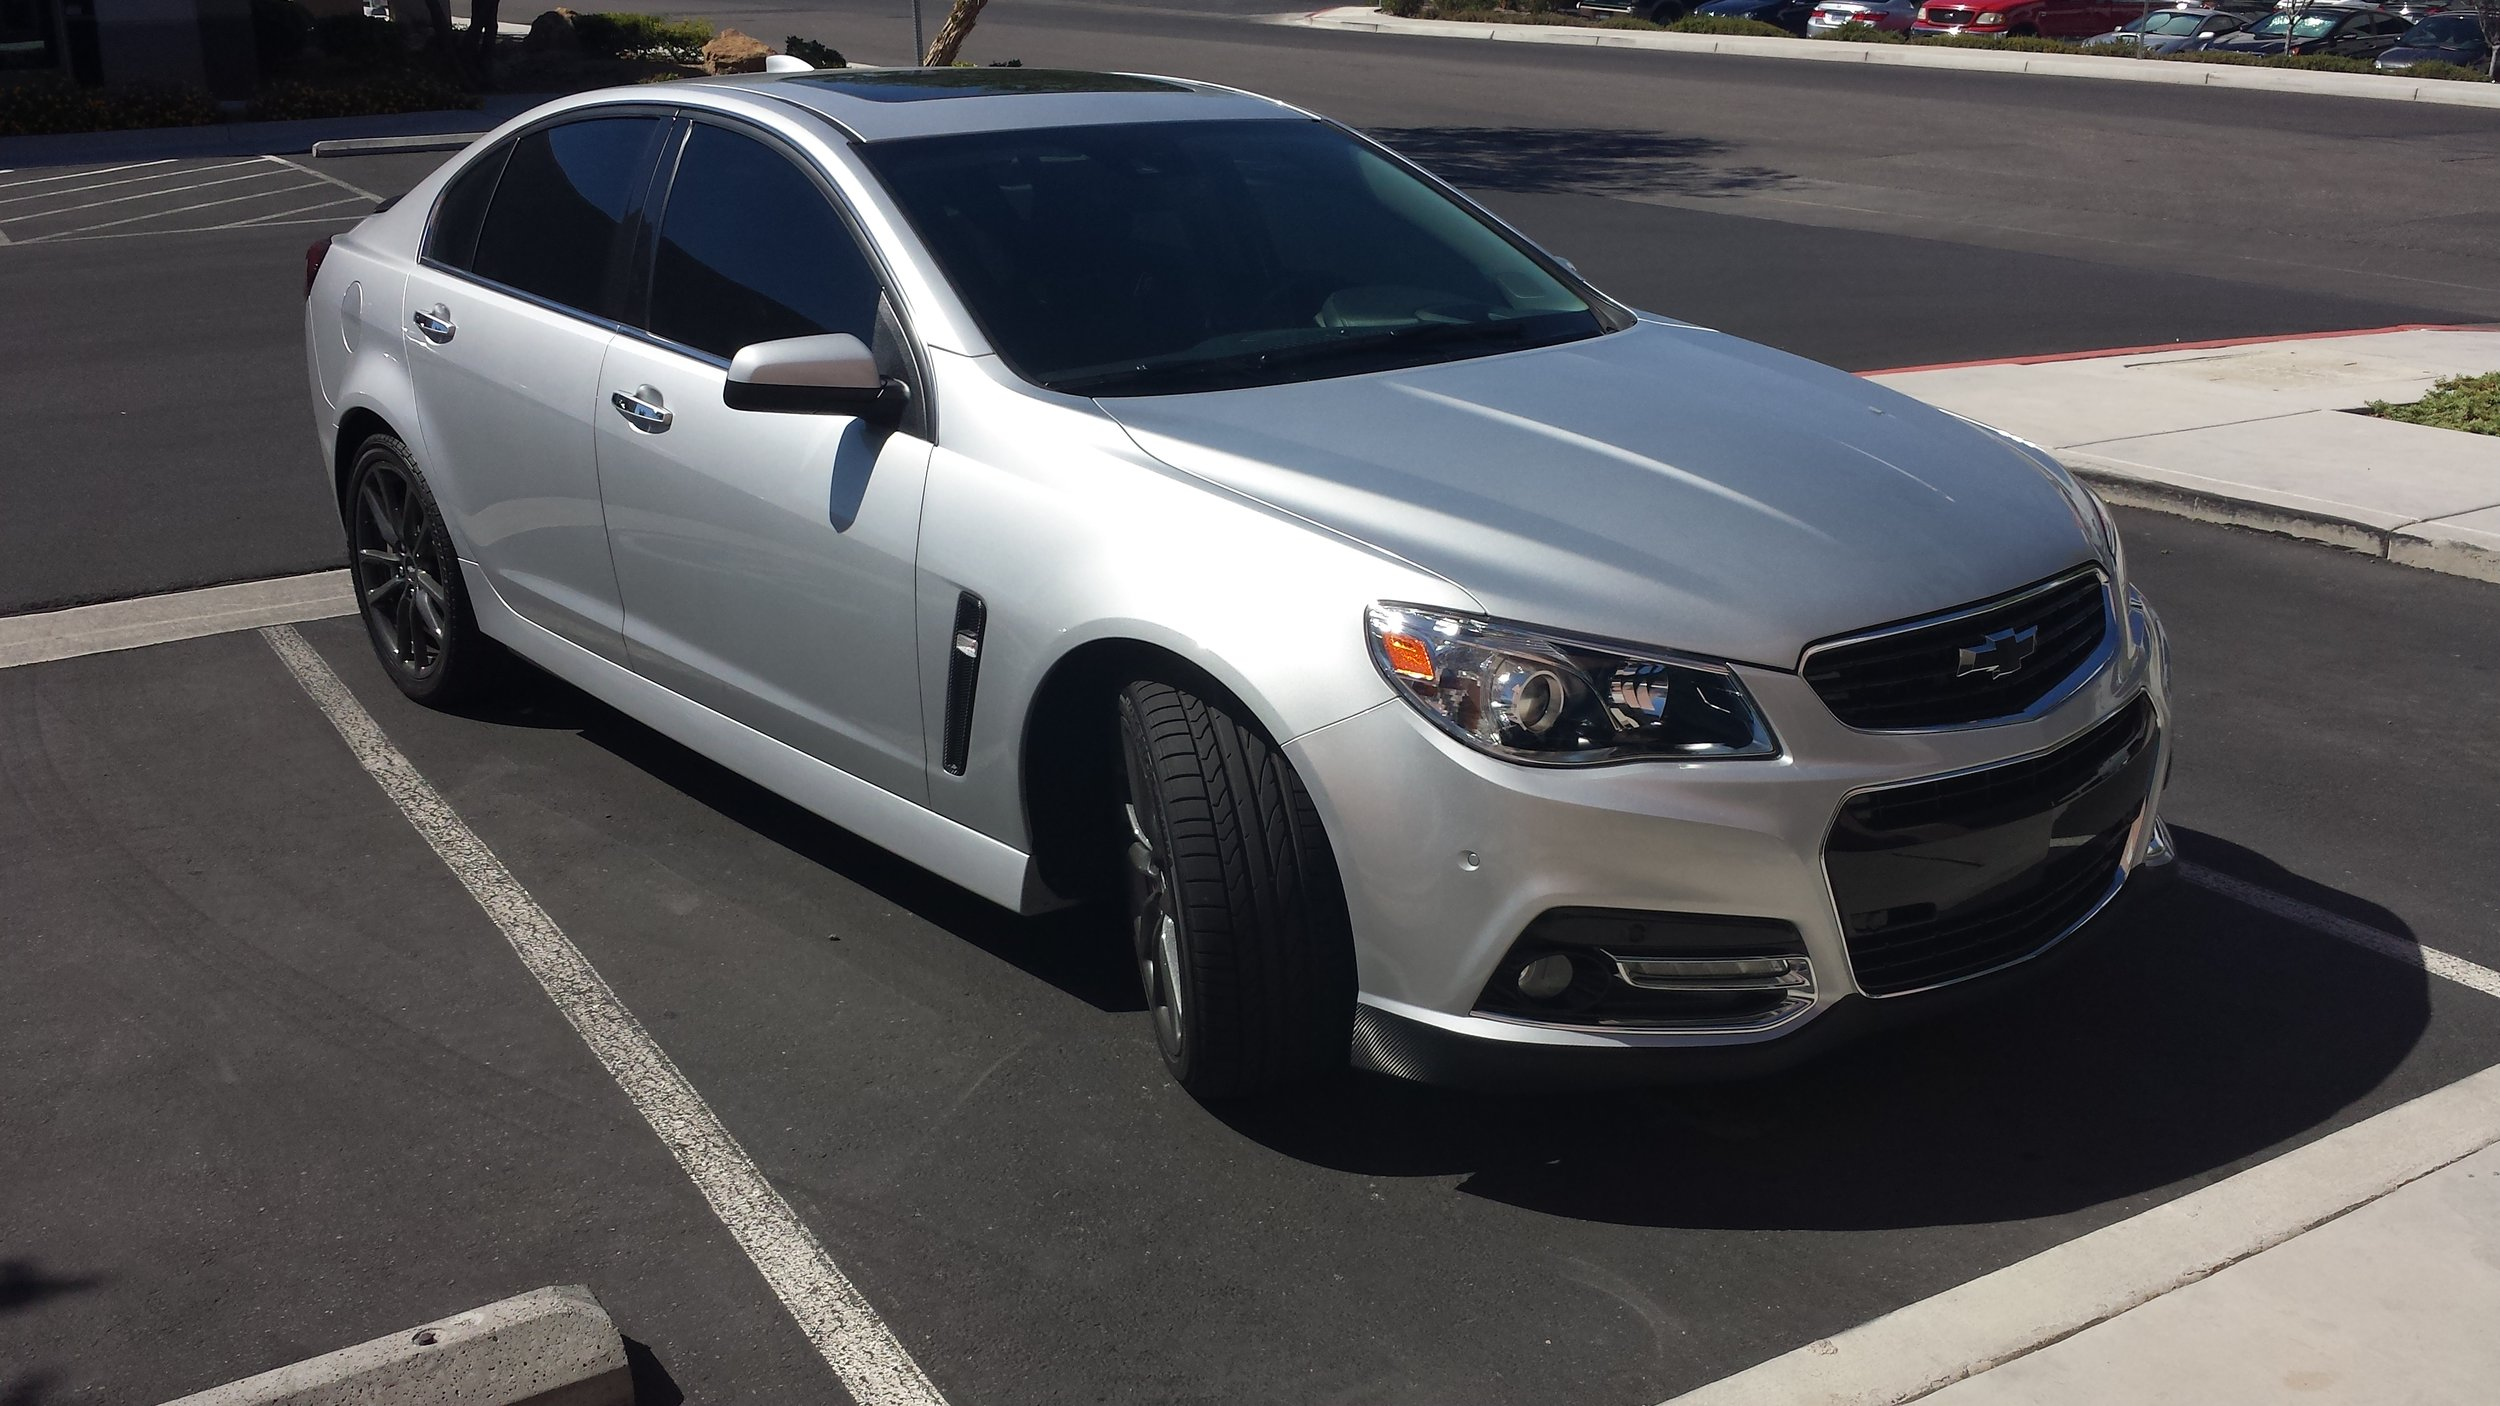 Chevy SS Carbon Fiber Accents